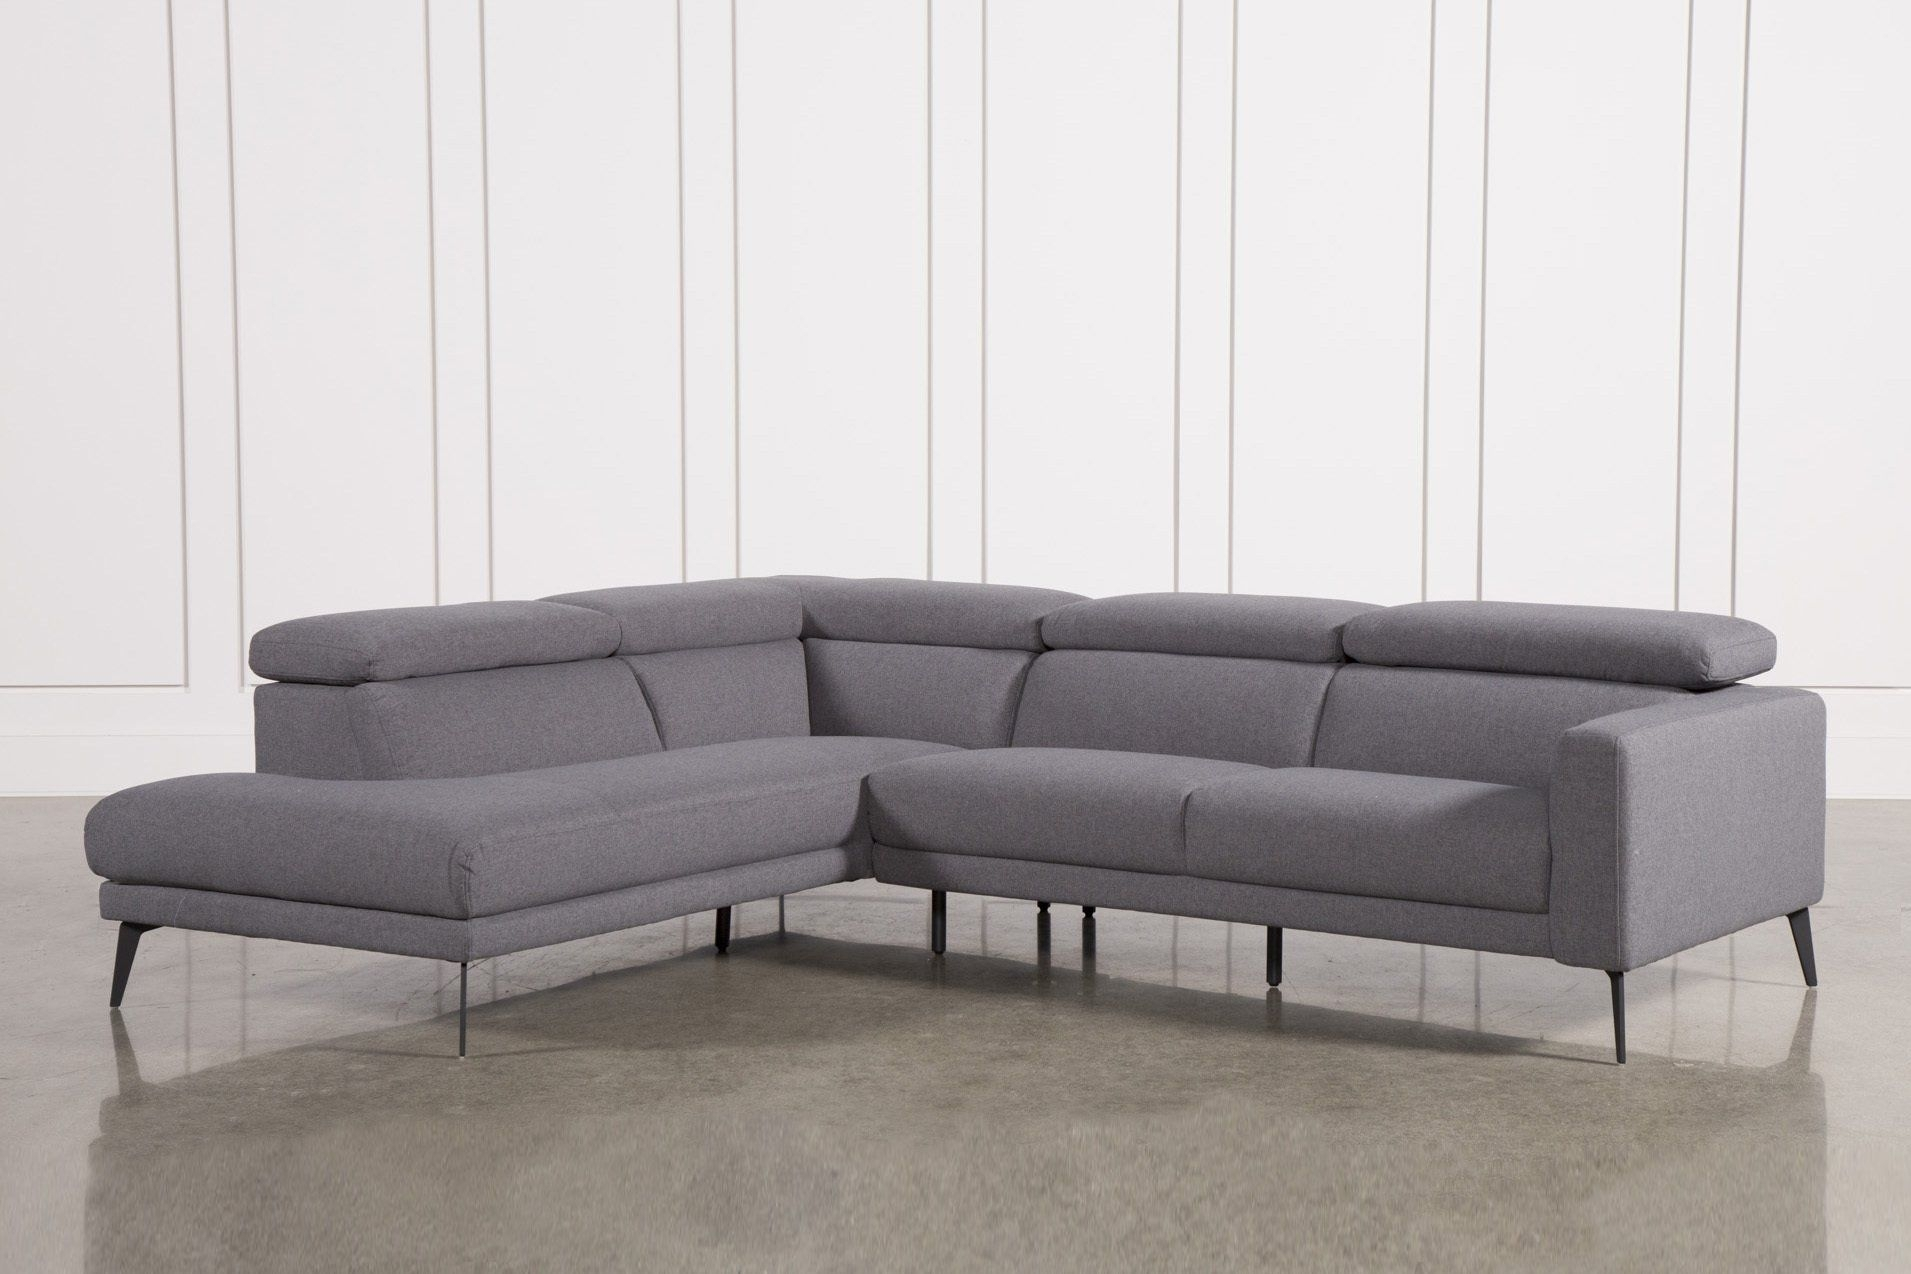 Ikea - Norsborg, Sofa, Edum Beige, , Large Or Small, Color for Cosmos Grey 2 Piece Sectionals With Raf Chaise